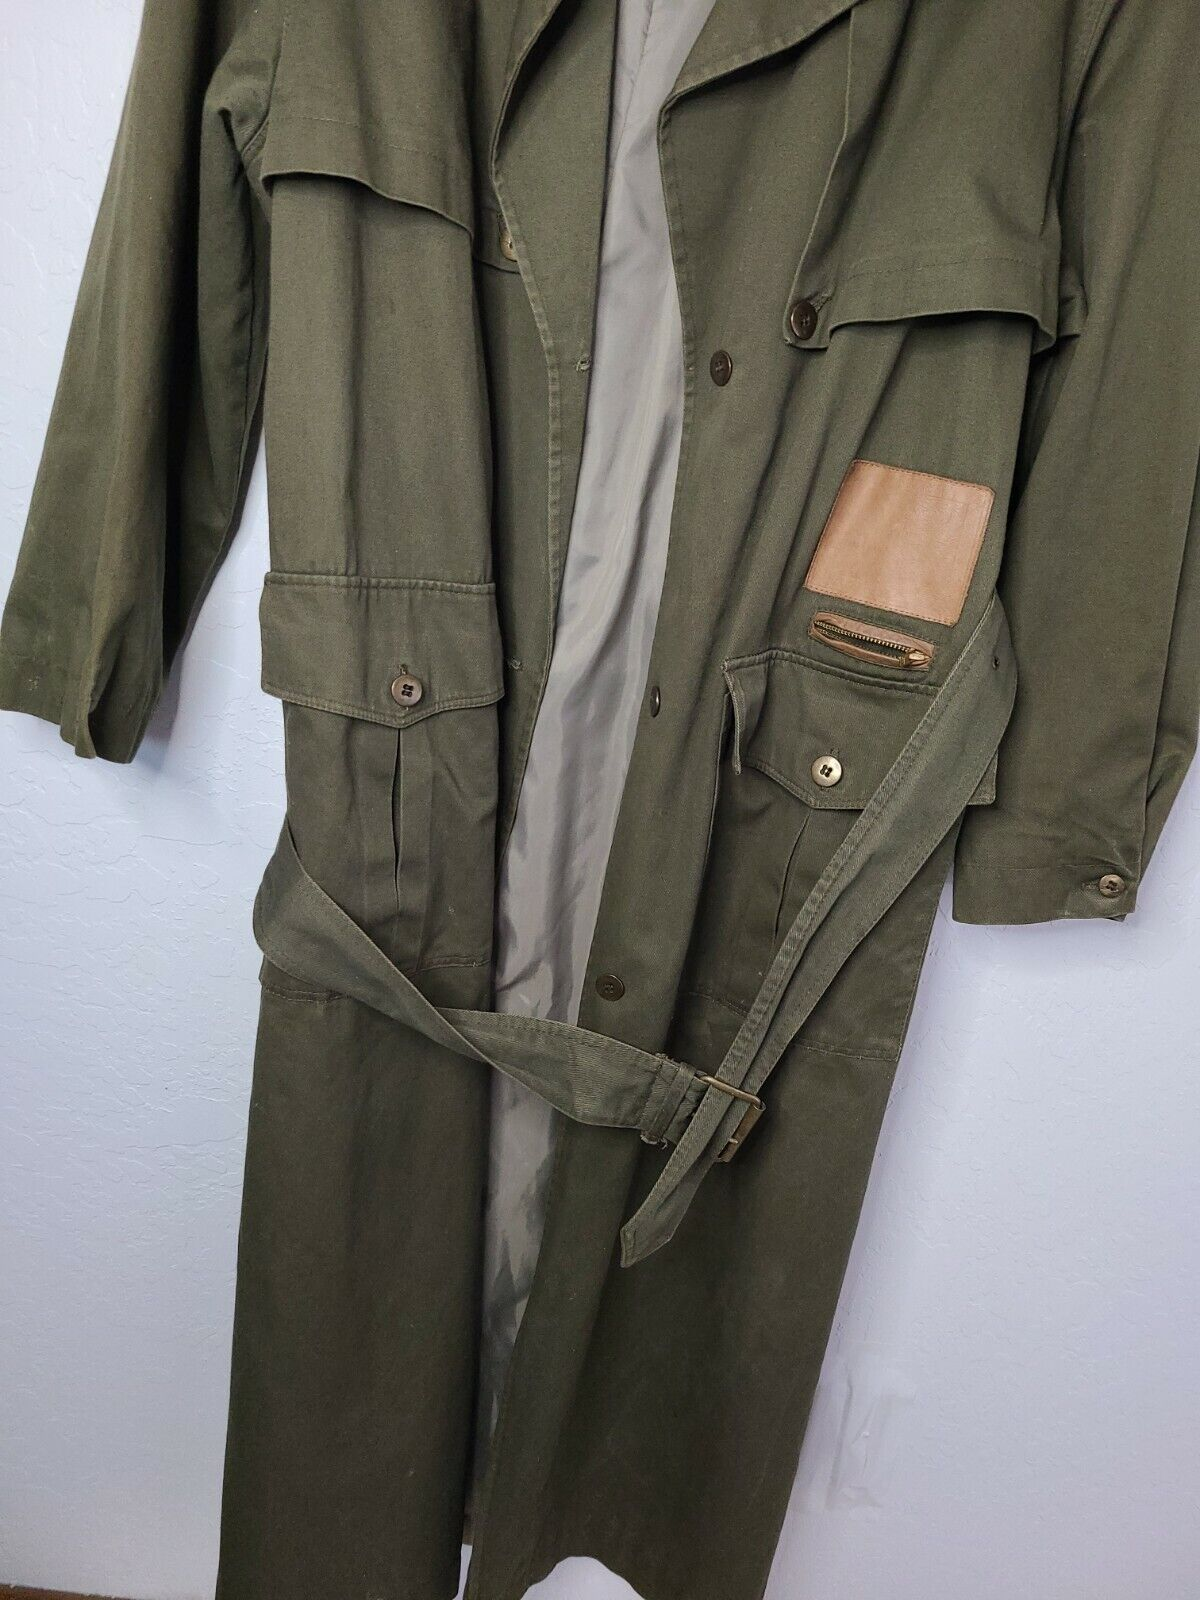 Classic Military Style Trench Coat, Olive Army Gr… - image 2